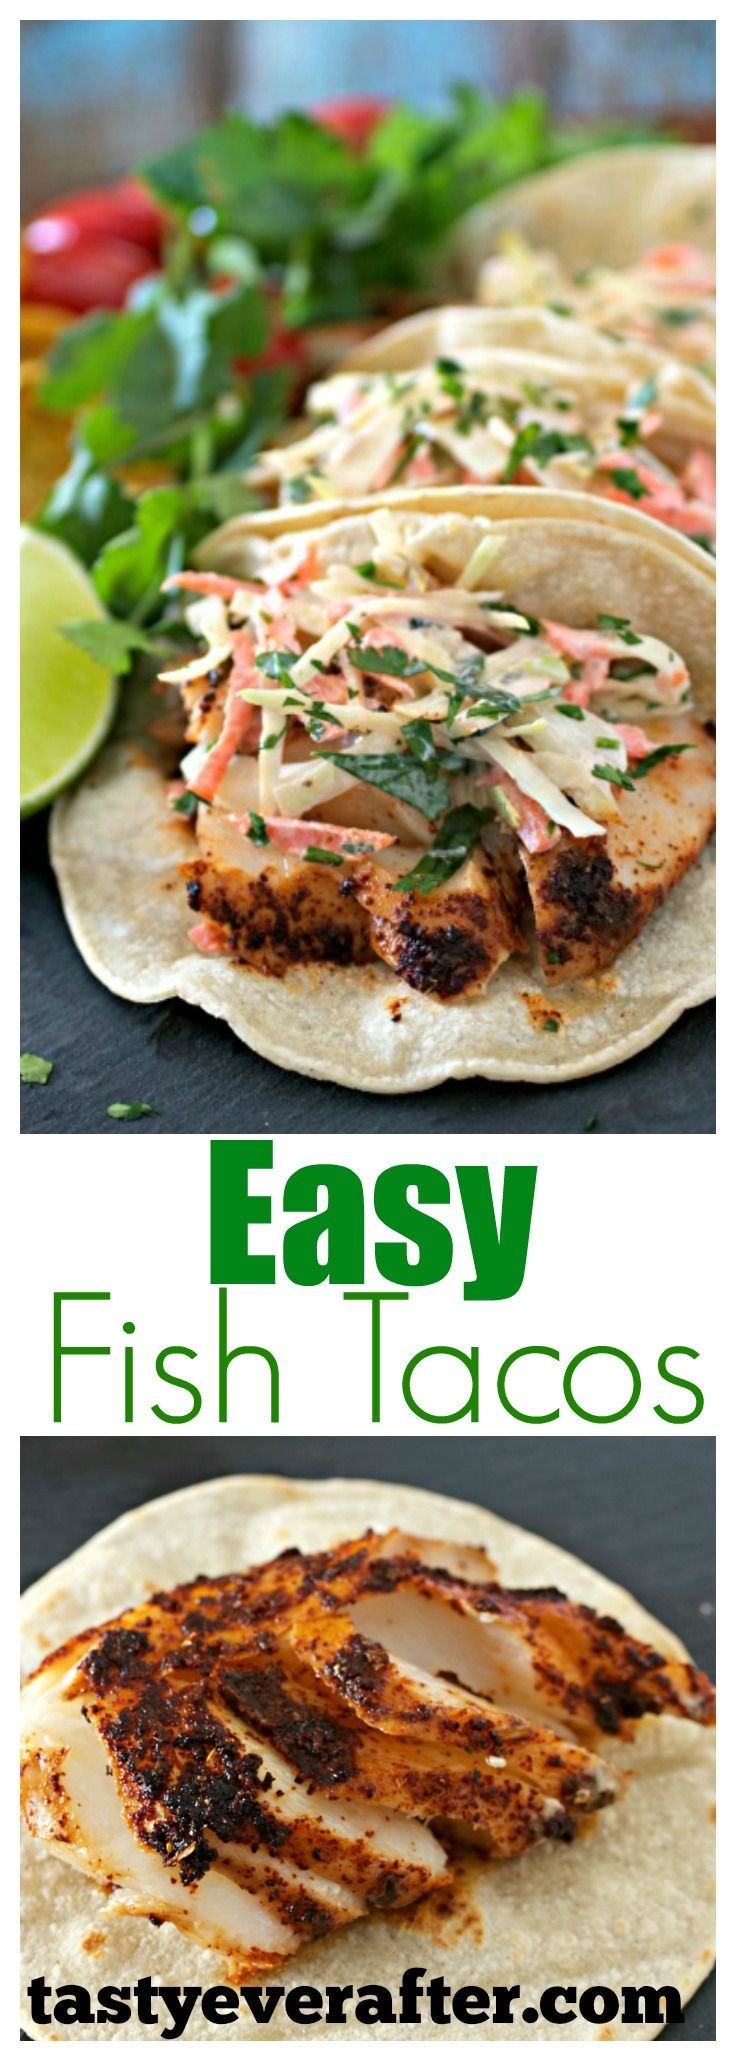 243 best tasty ever after recipes images on pinterest for Easy fish taco recipe